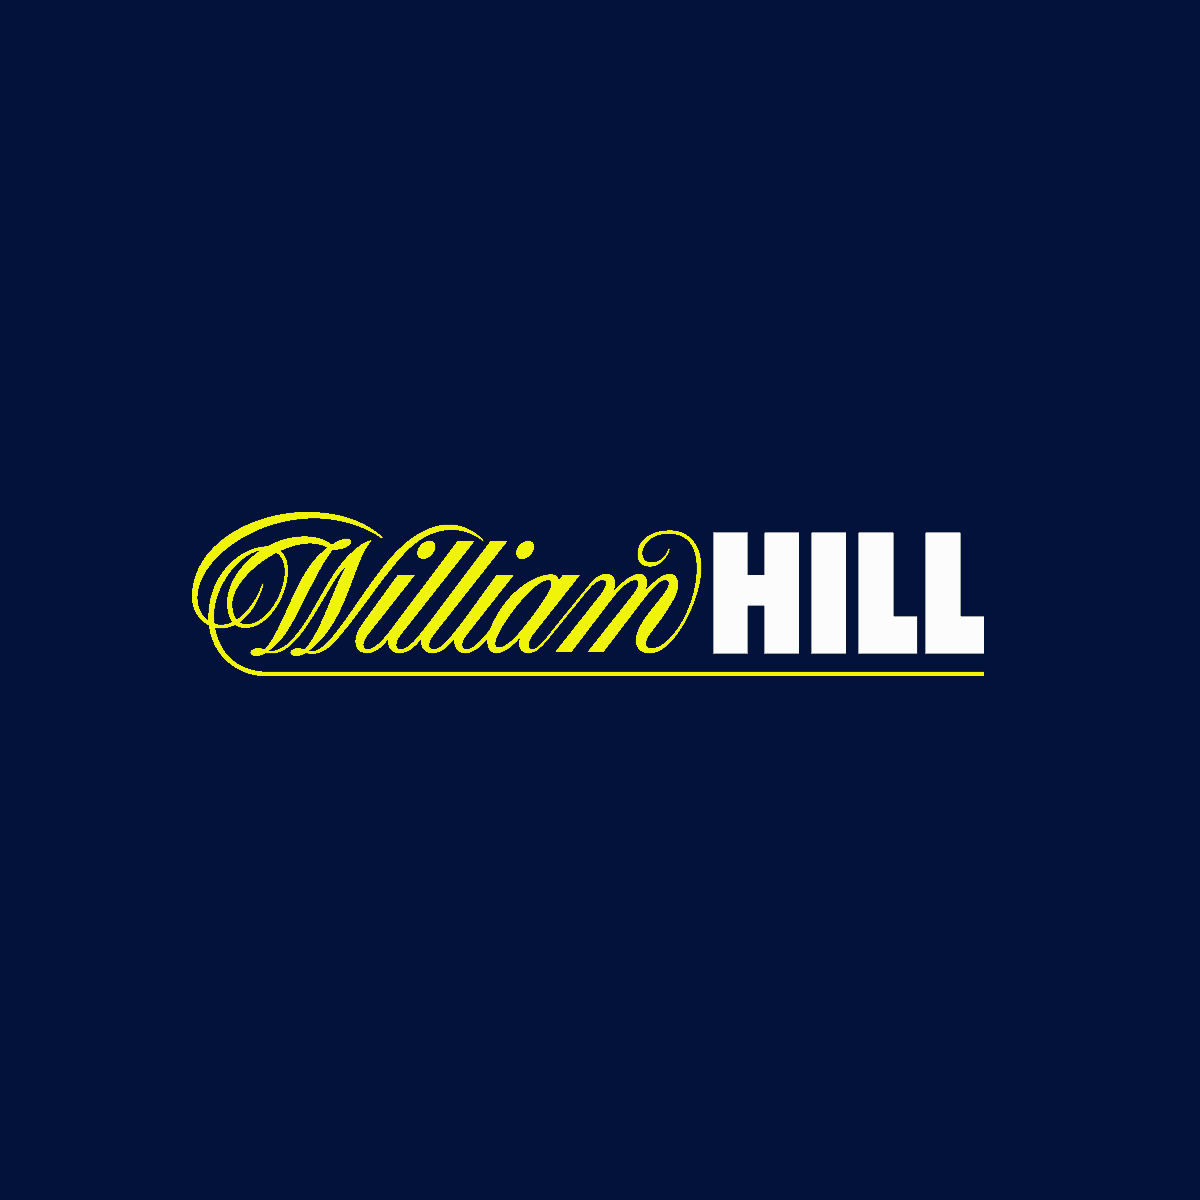 7. William Hill